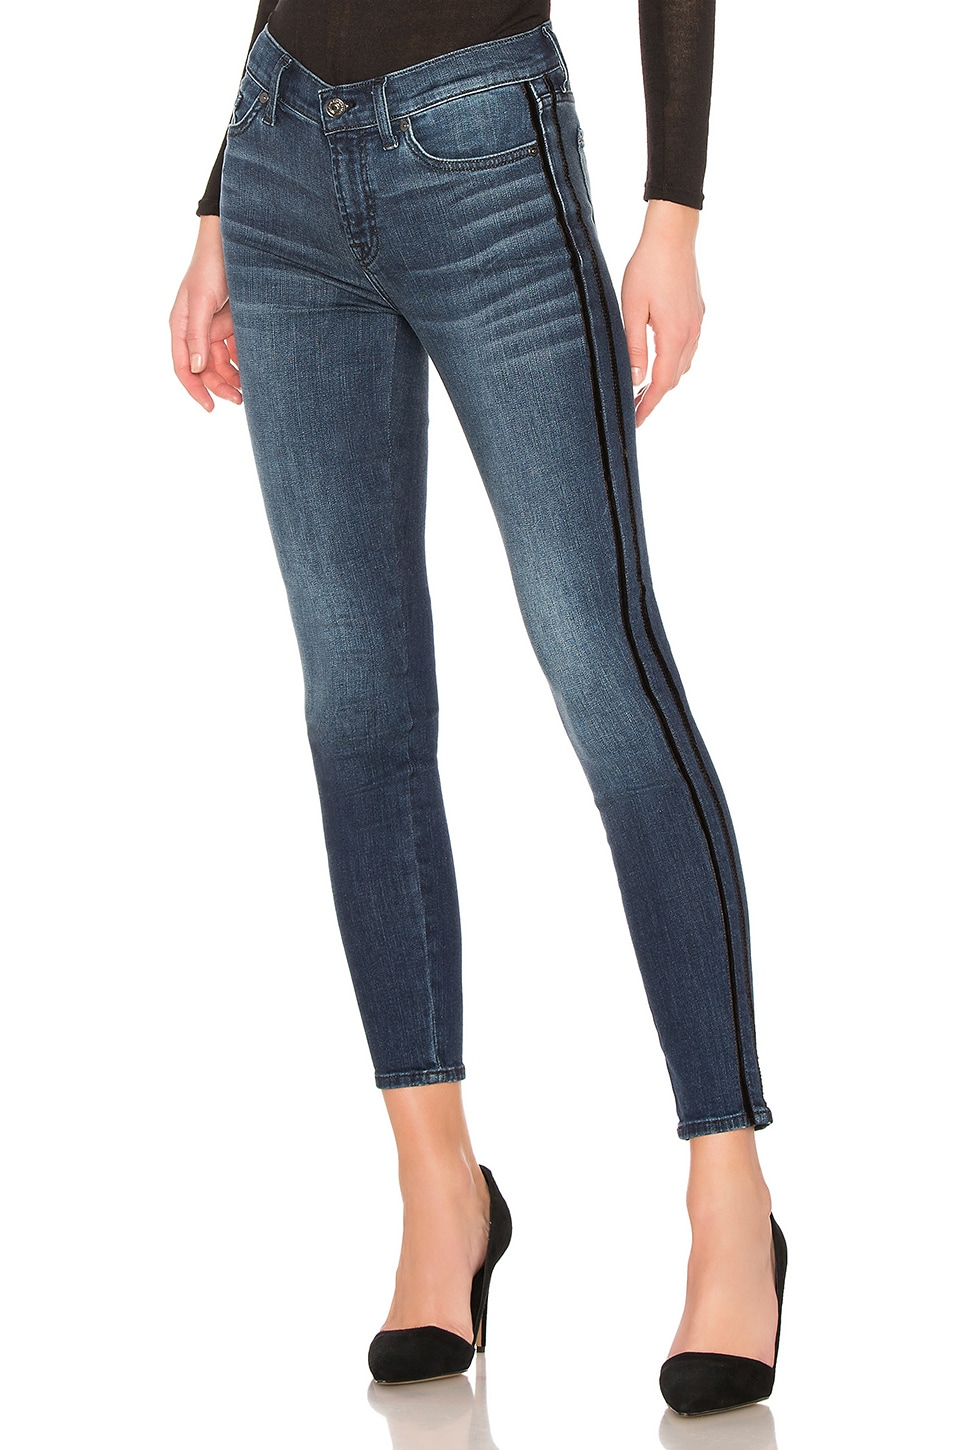 7 For All Mankind JEAN SKINNY ANKLE SKINNY